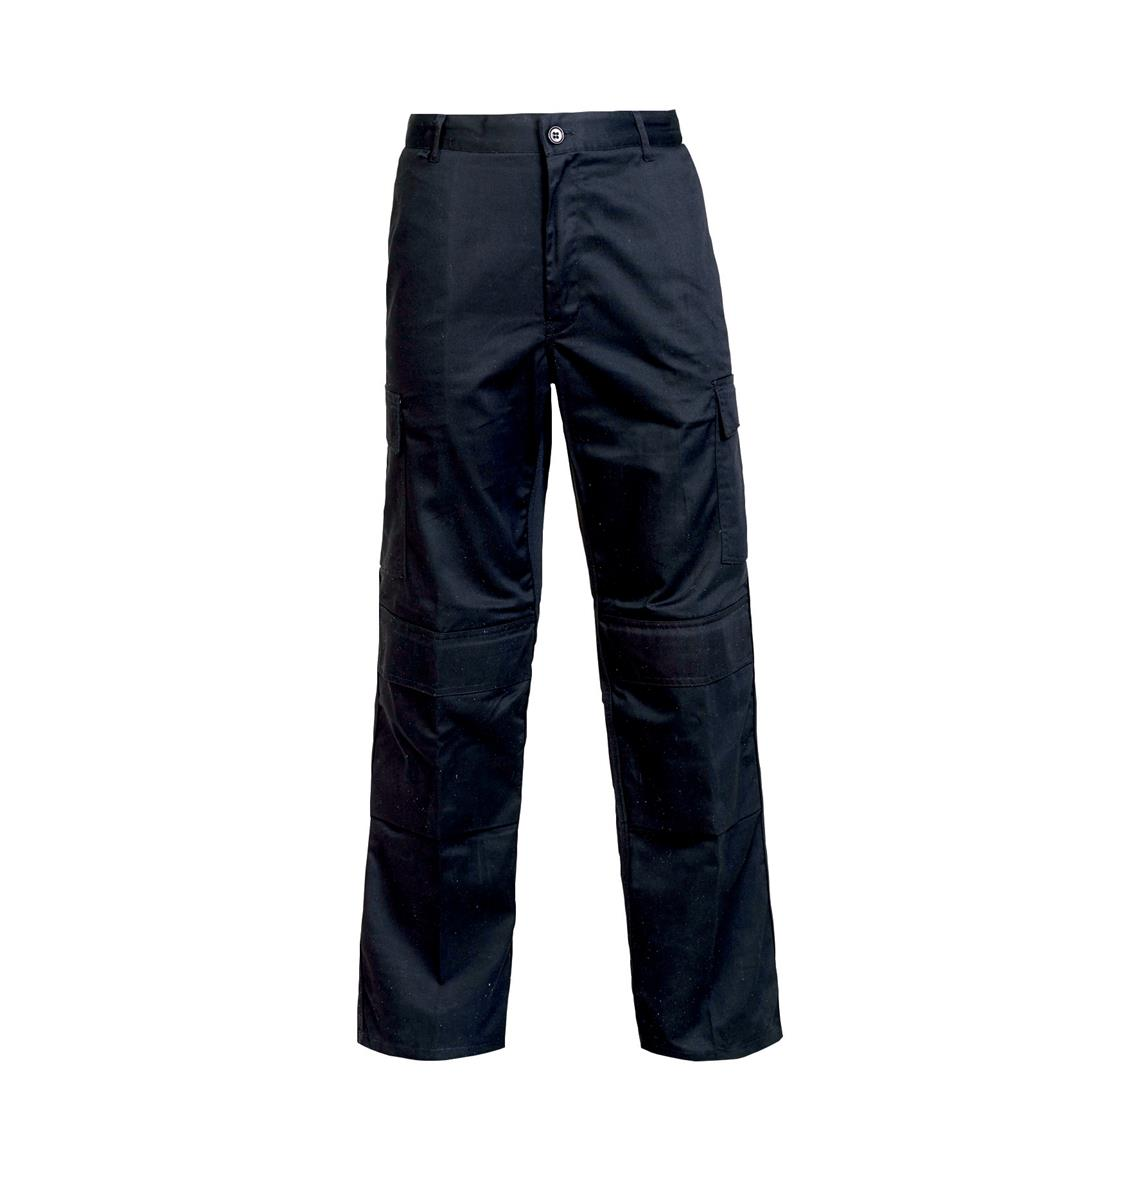 Combat Trousers Polycotton with Pockets Size 34in Long Black Ref PCTHWBL34T *1-3 Days Lead Time*